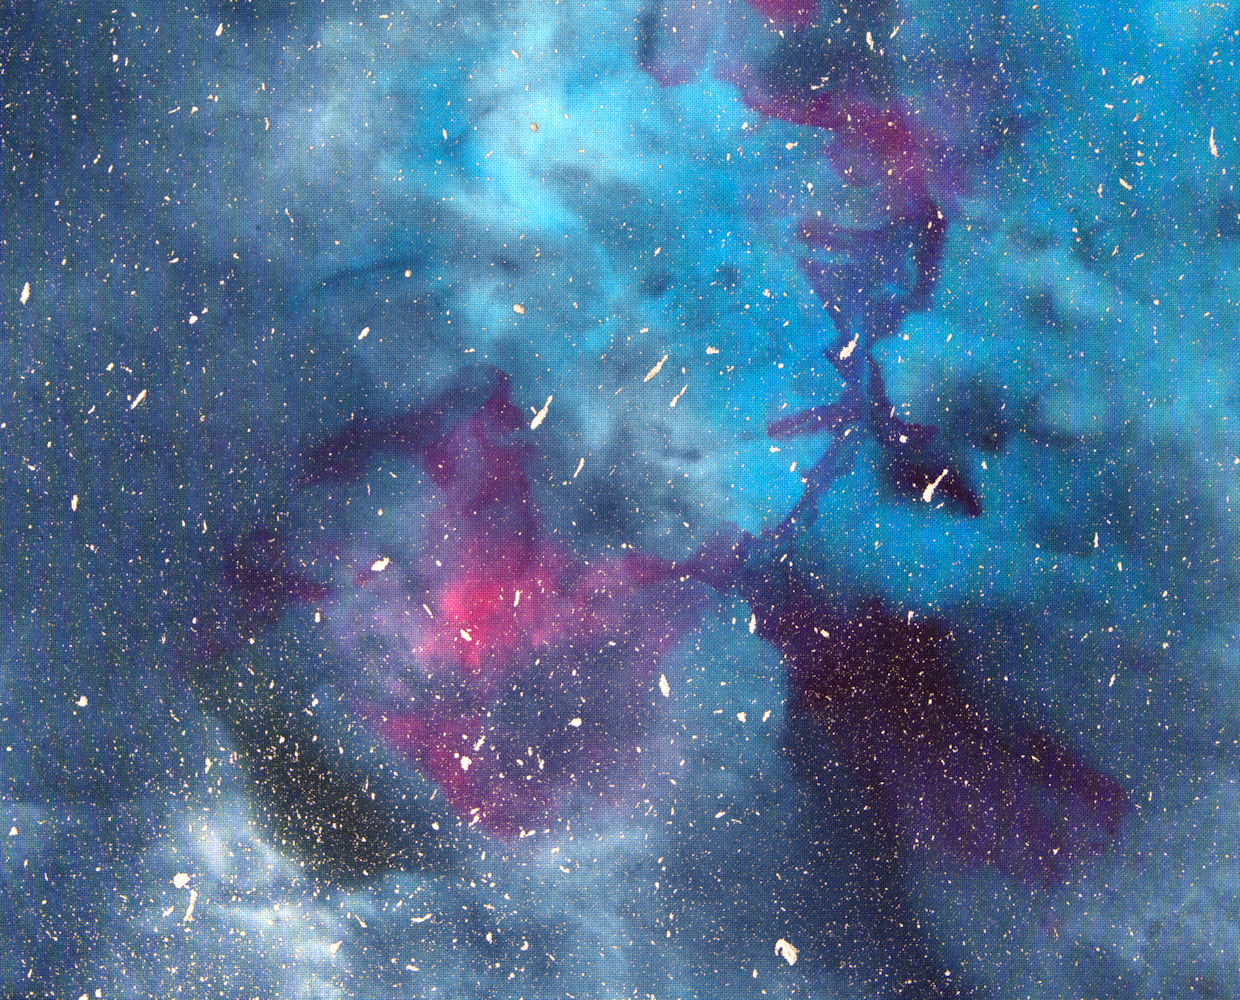 Black, blue, turquoise and pink galaxy dyed on fabric